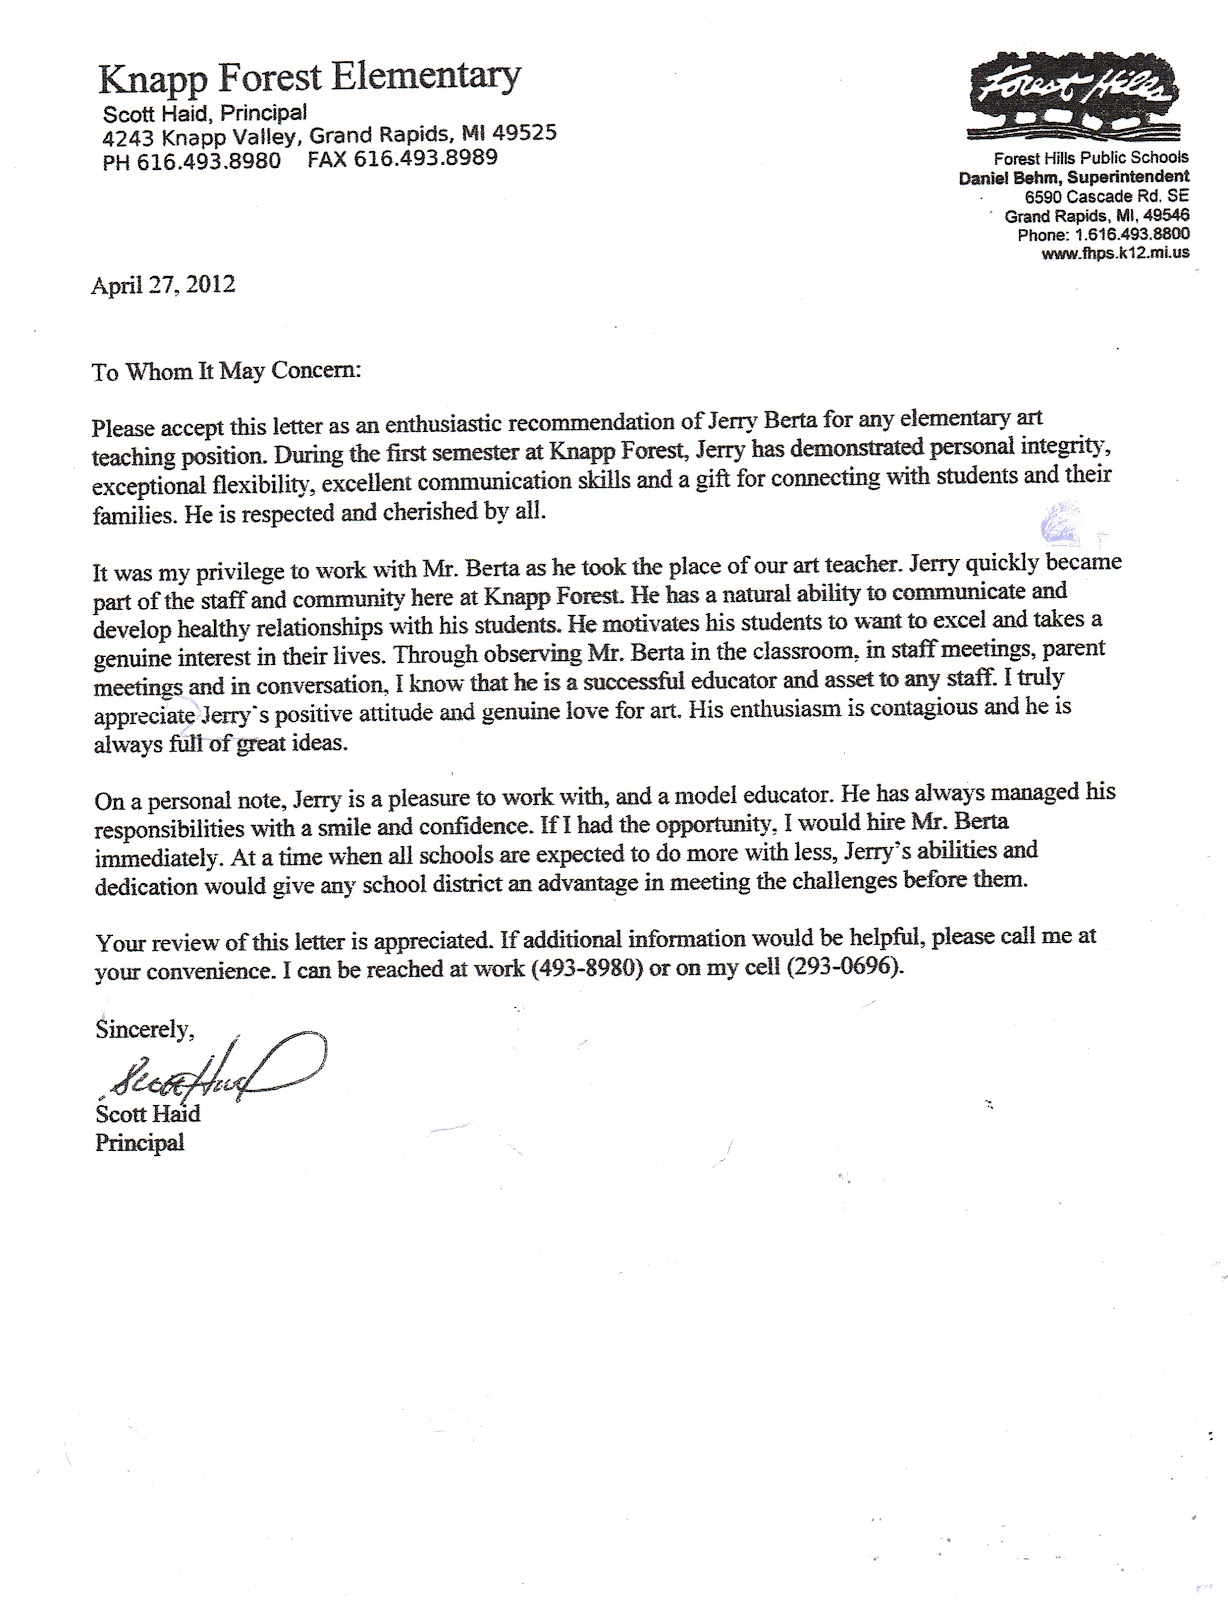 Parent Recommendation Letter For Gifted Program  EczaSolinfCo